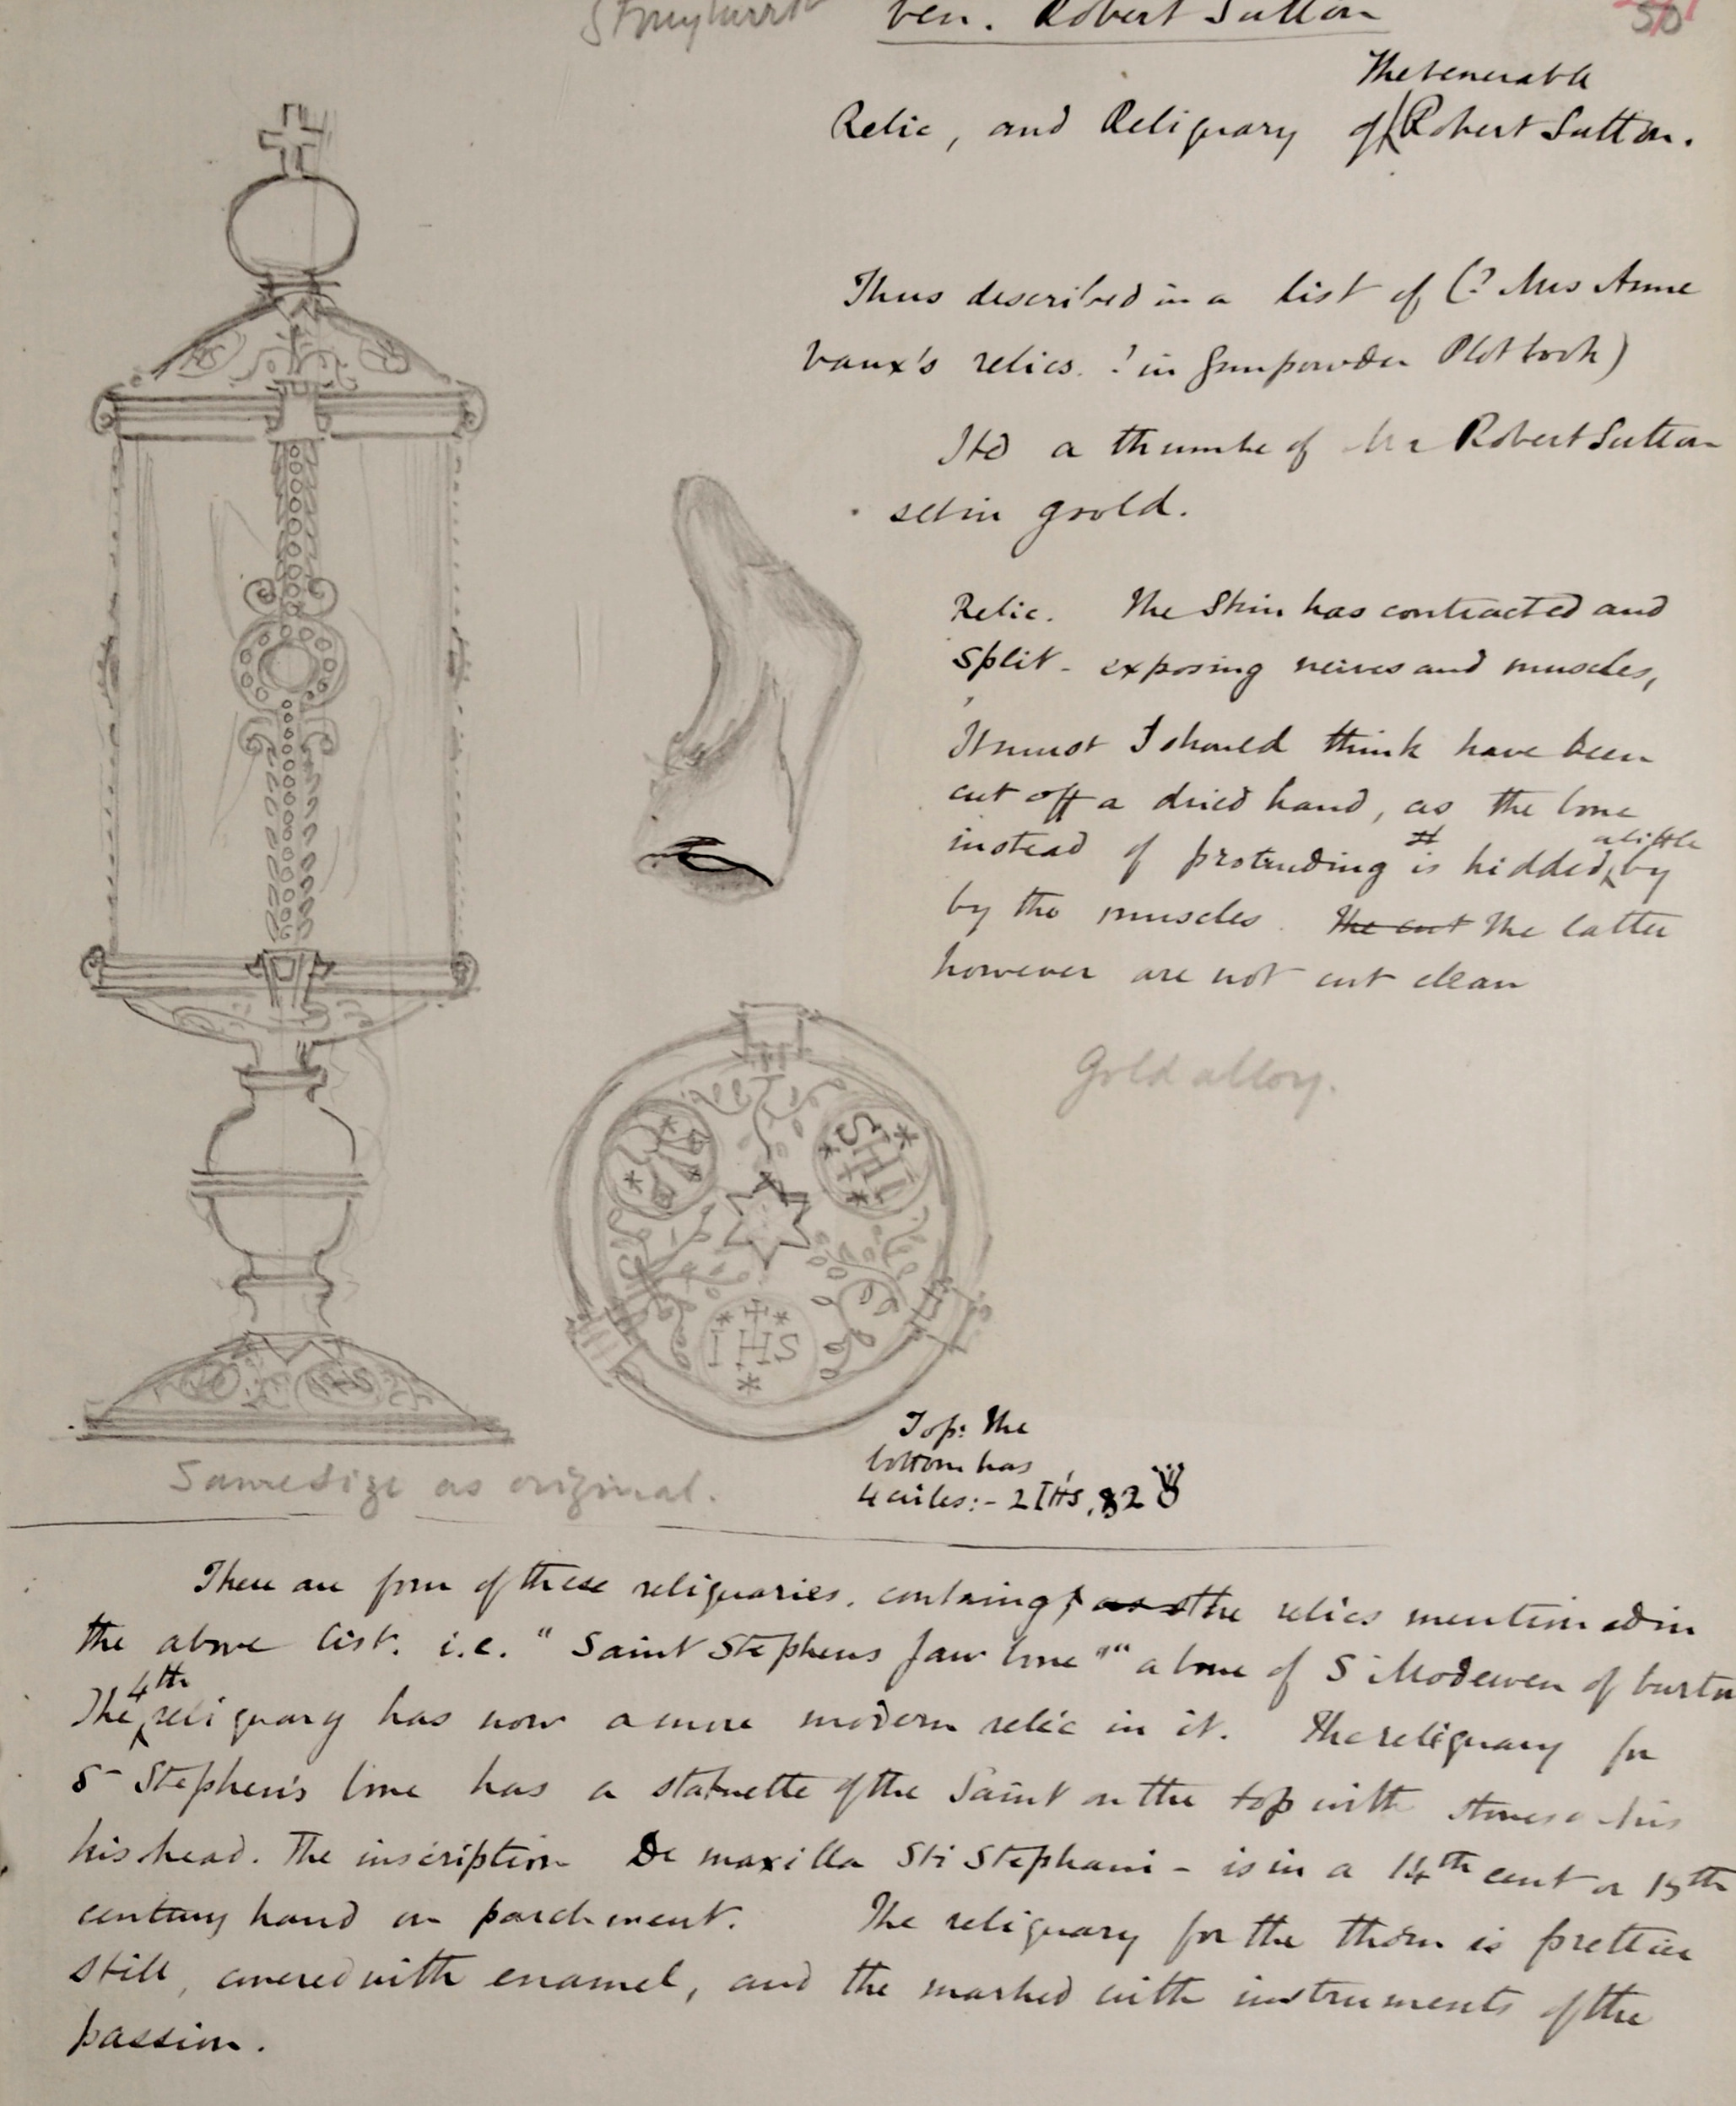 Page of handwritten notes with three pencil sketches. One sketch is of a reliquary with note below that it is same size as original. There is a sketch of a thumb and a sketch of the top of reliquary.